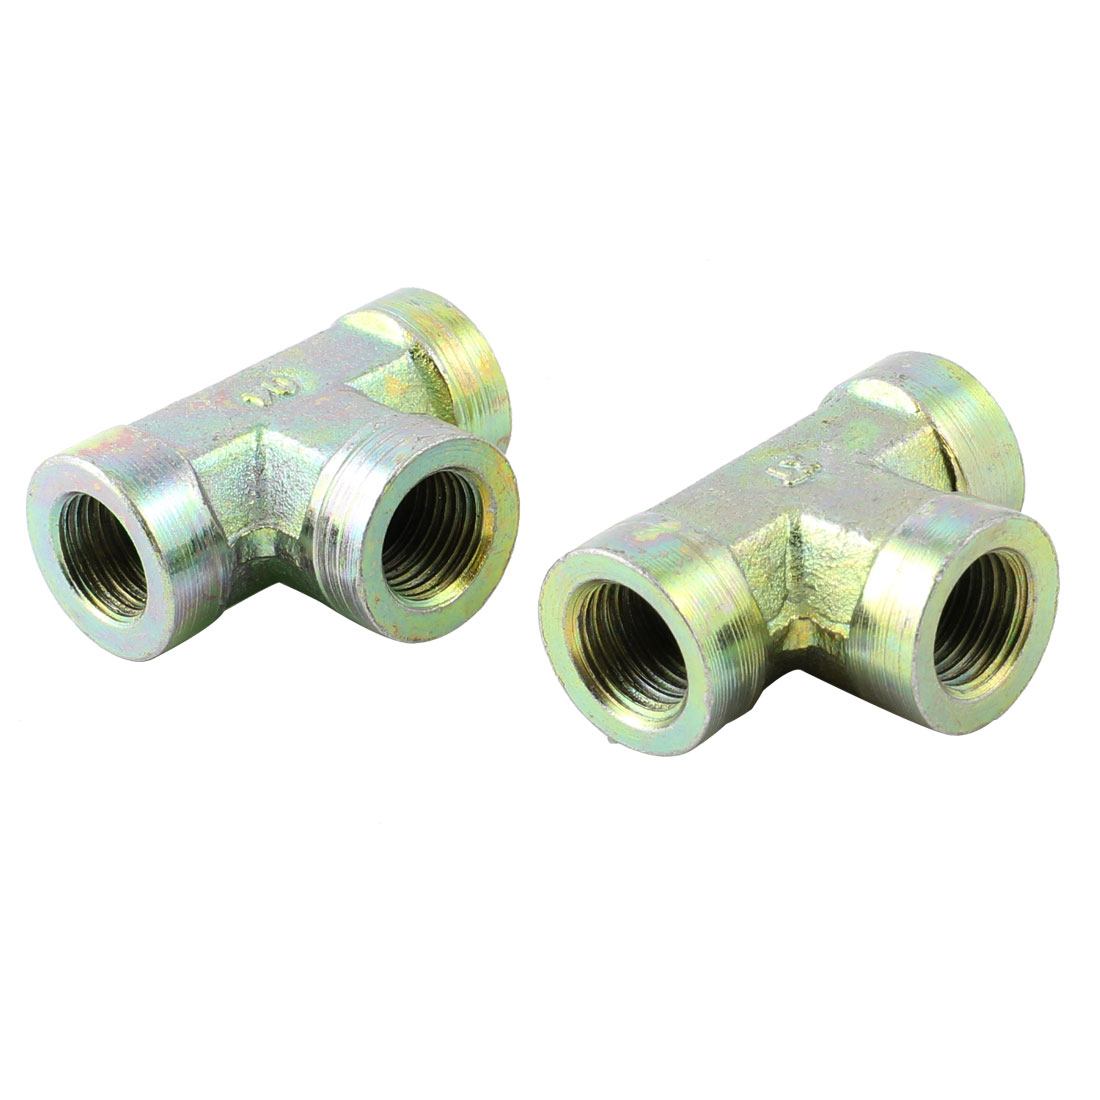 "2 Pcs Metal 1/4"" PT Thread T Shaped Equal Tee Connector Adapter"